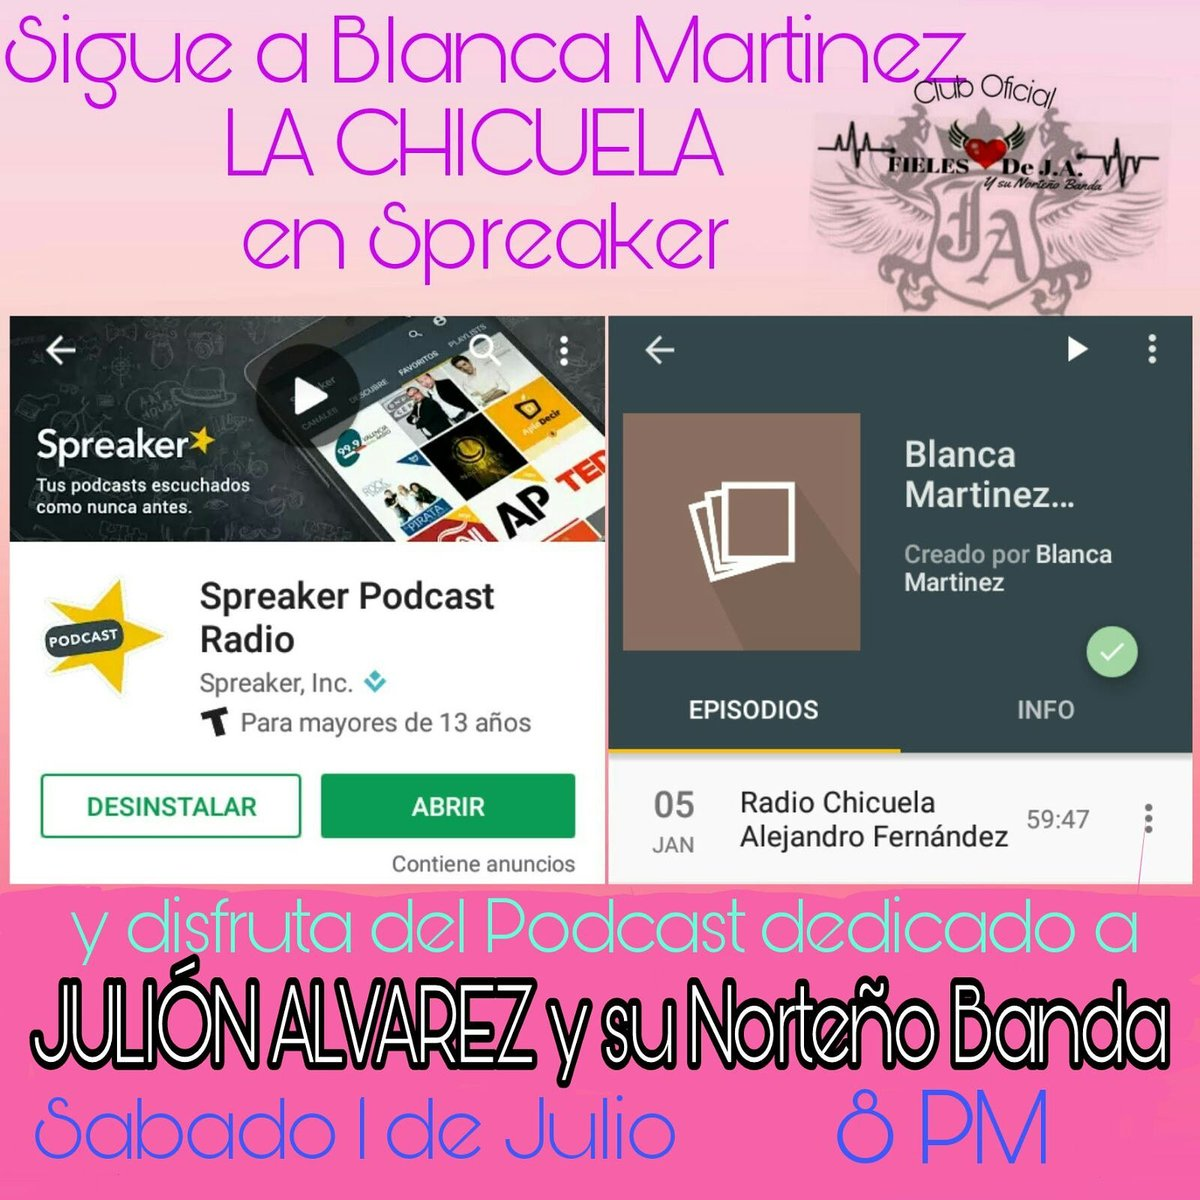 test Twitter Media - Ya sigues a @chicuela en @spreaker? Este 1 de Julio tiene un #Podcast con @julionalvarez #YSNB No te lo pierdas! 8Pm  #FielesJA invita! https://t.co/dSEnqQBYCQ